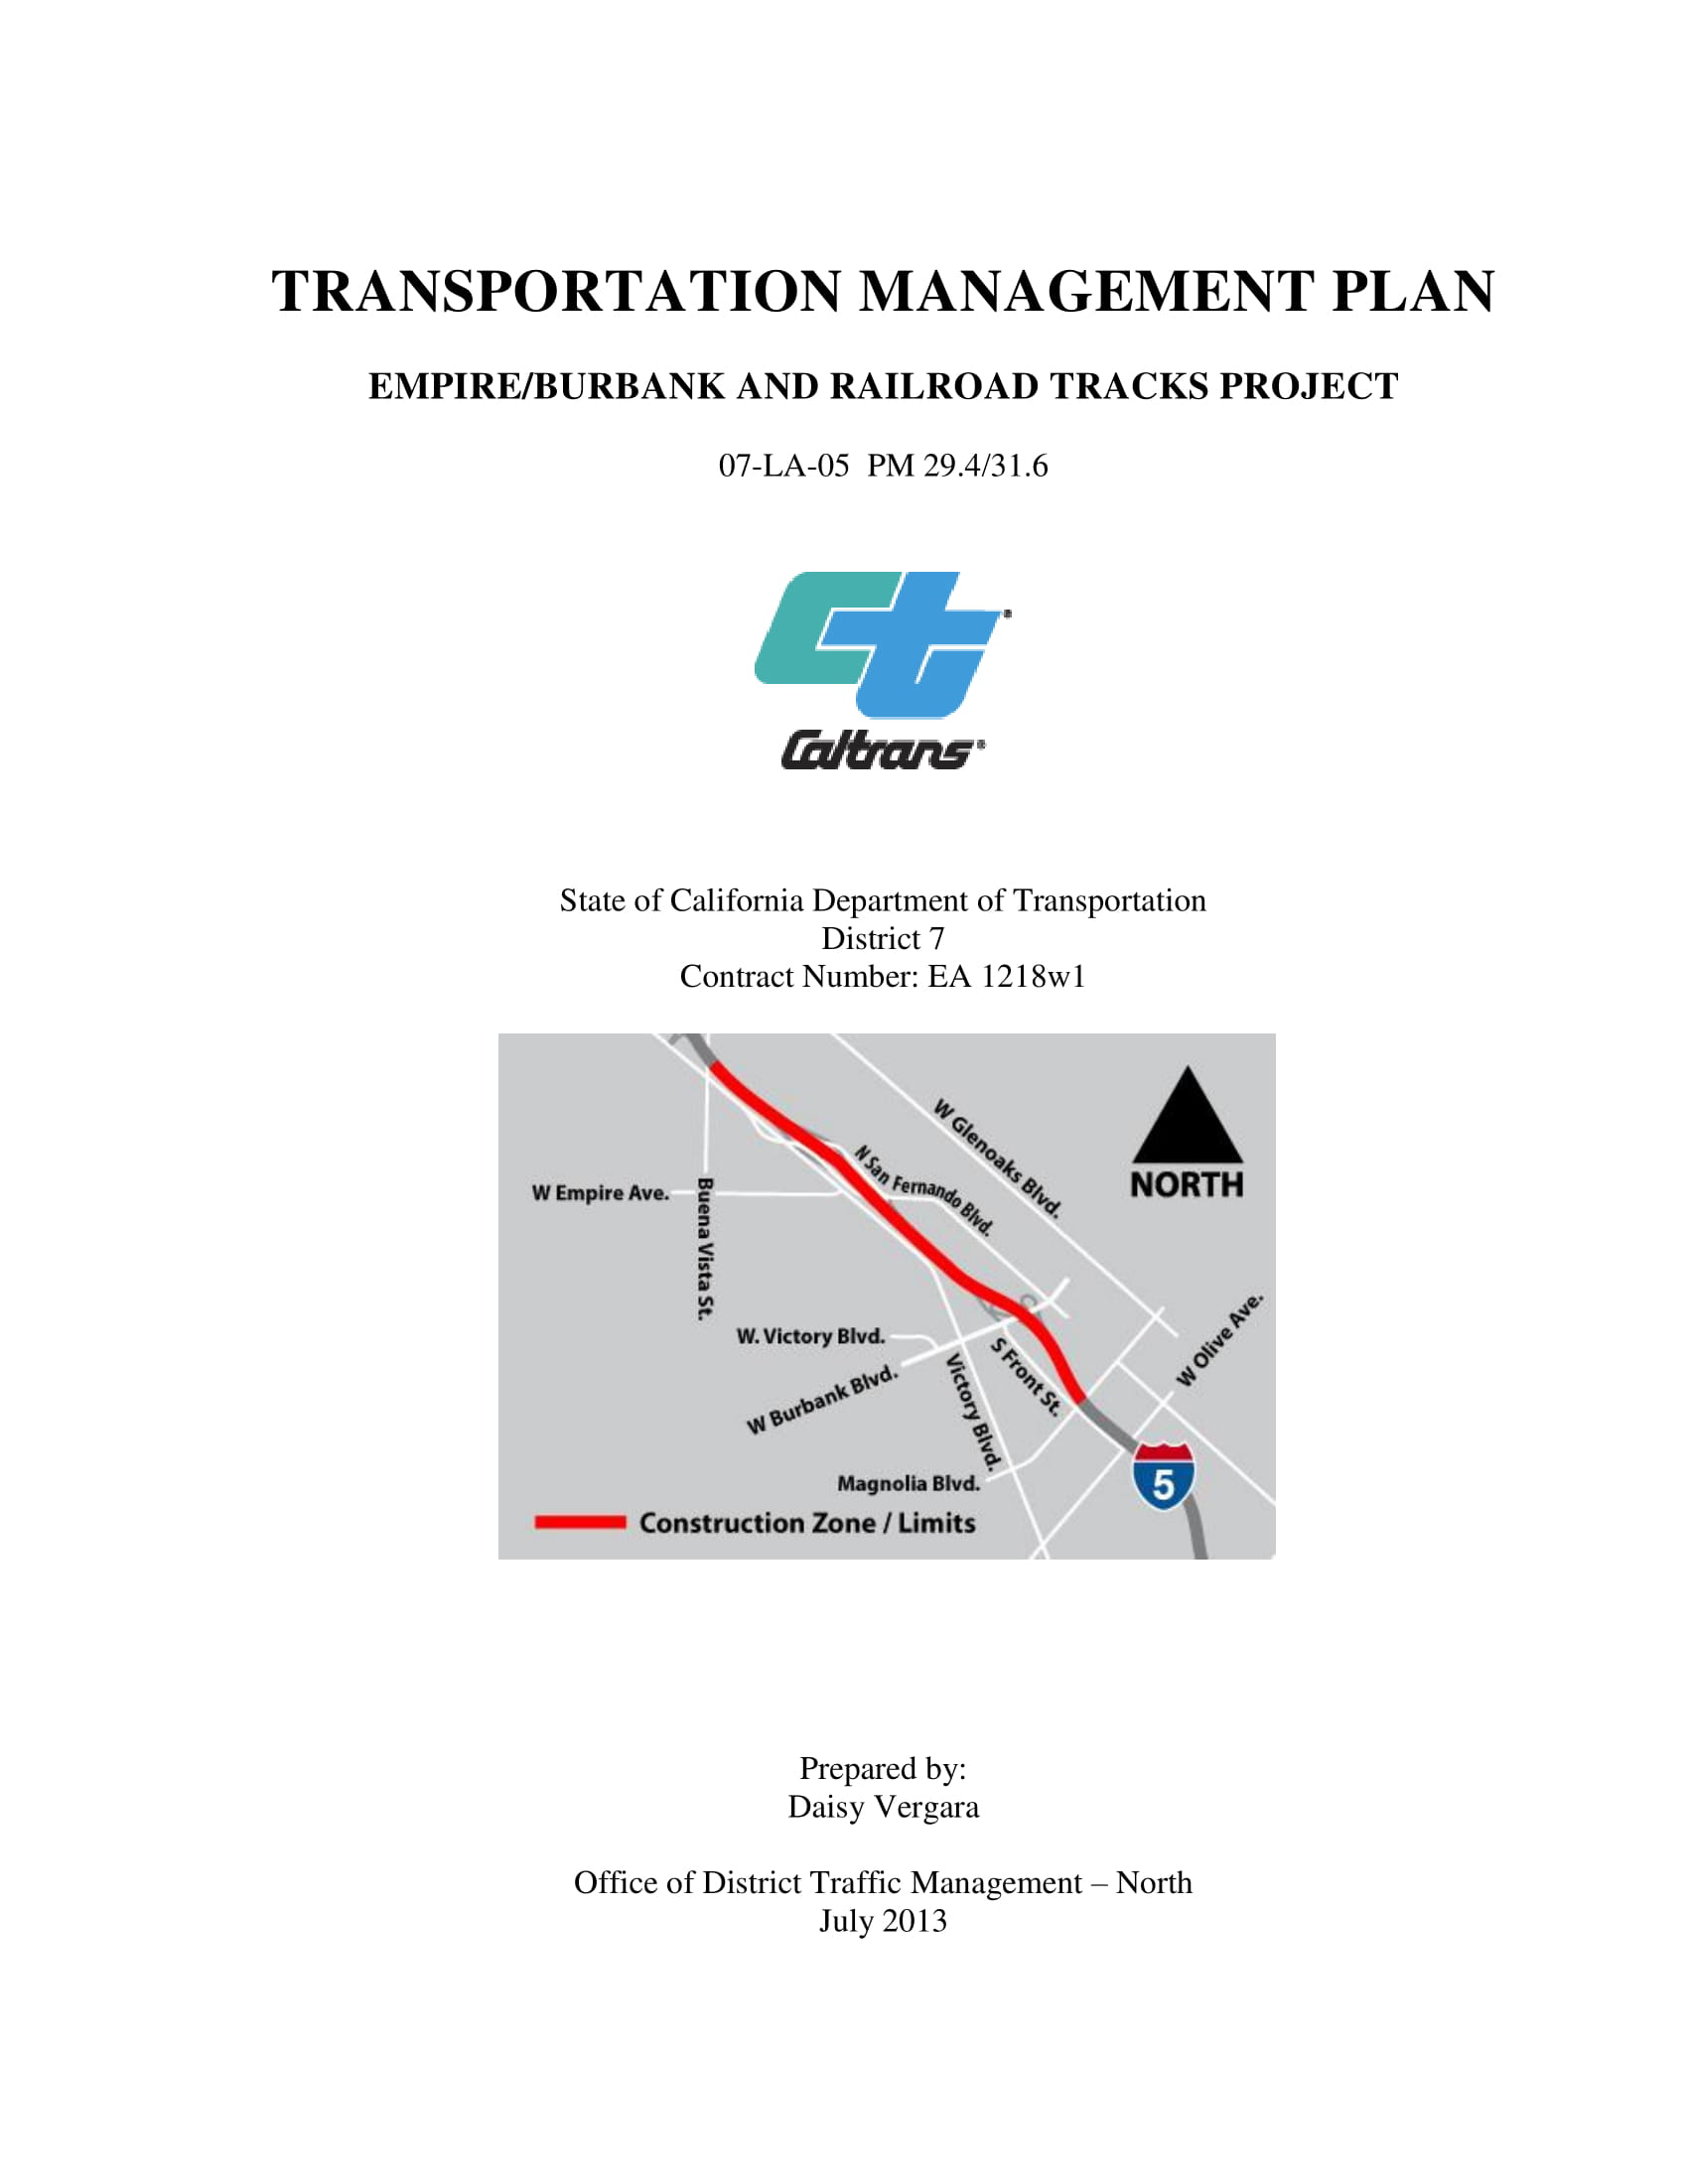 tmp realign rte 5 and rr tracks revised